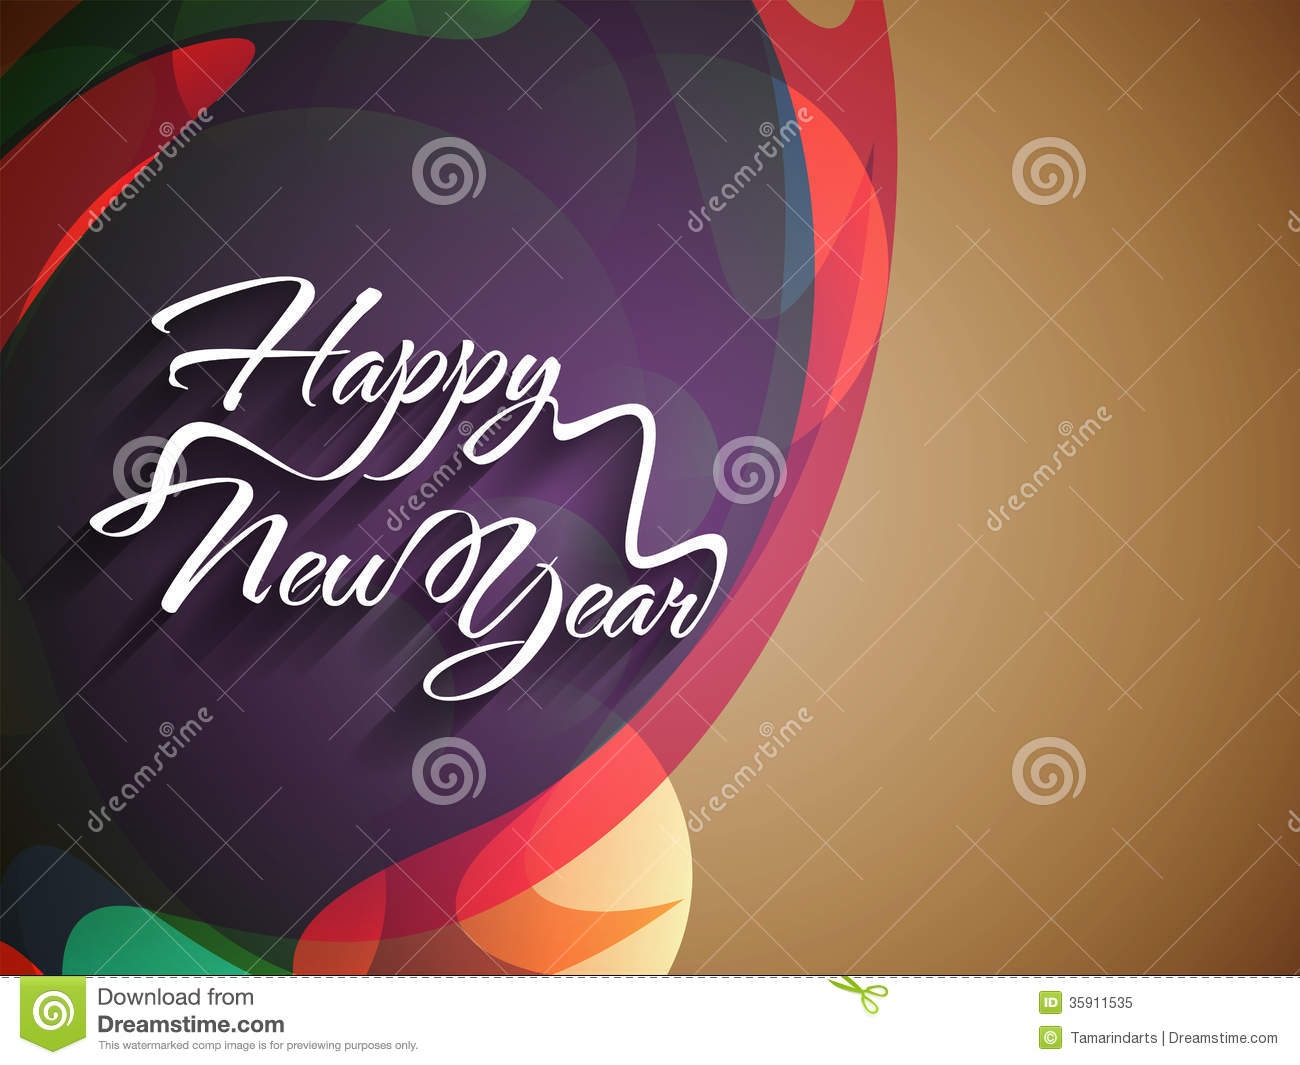 elegant text design of happy new year on colorful